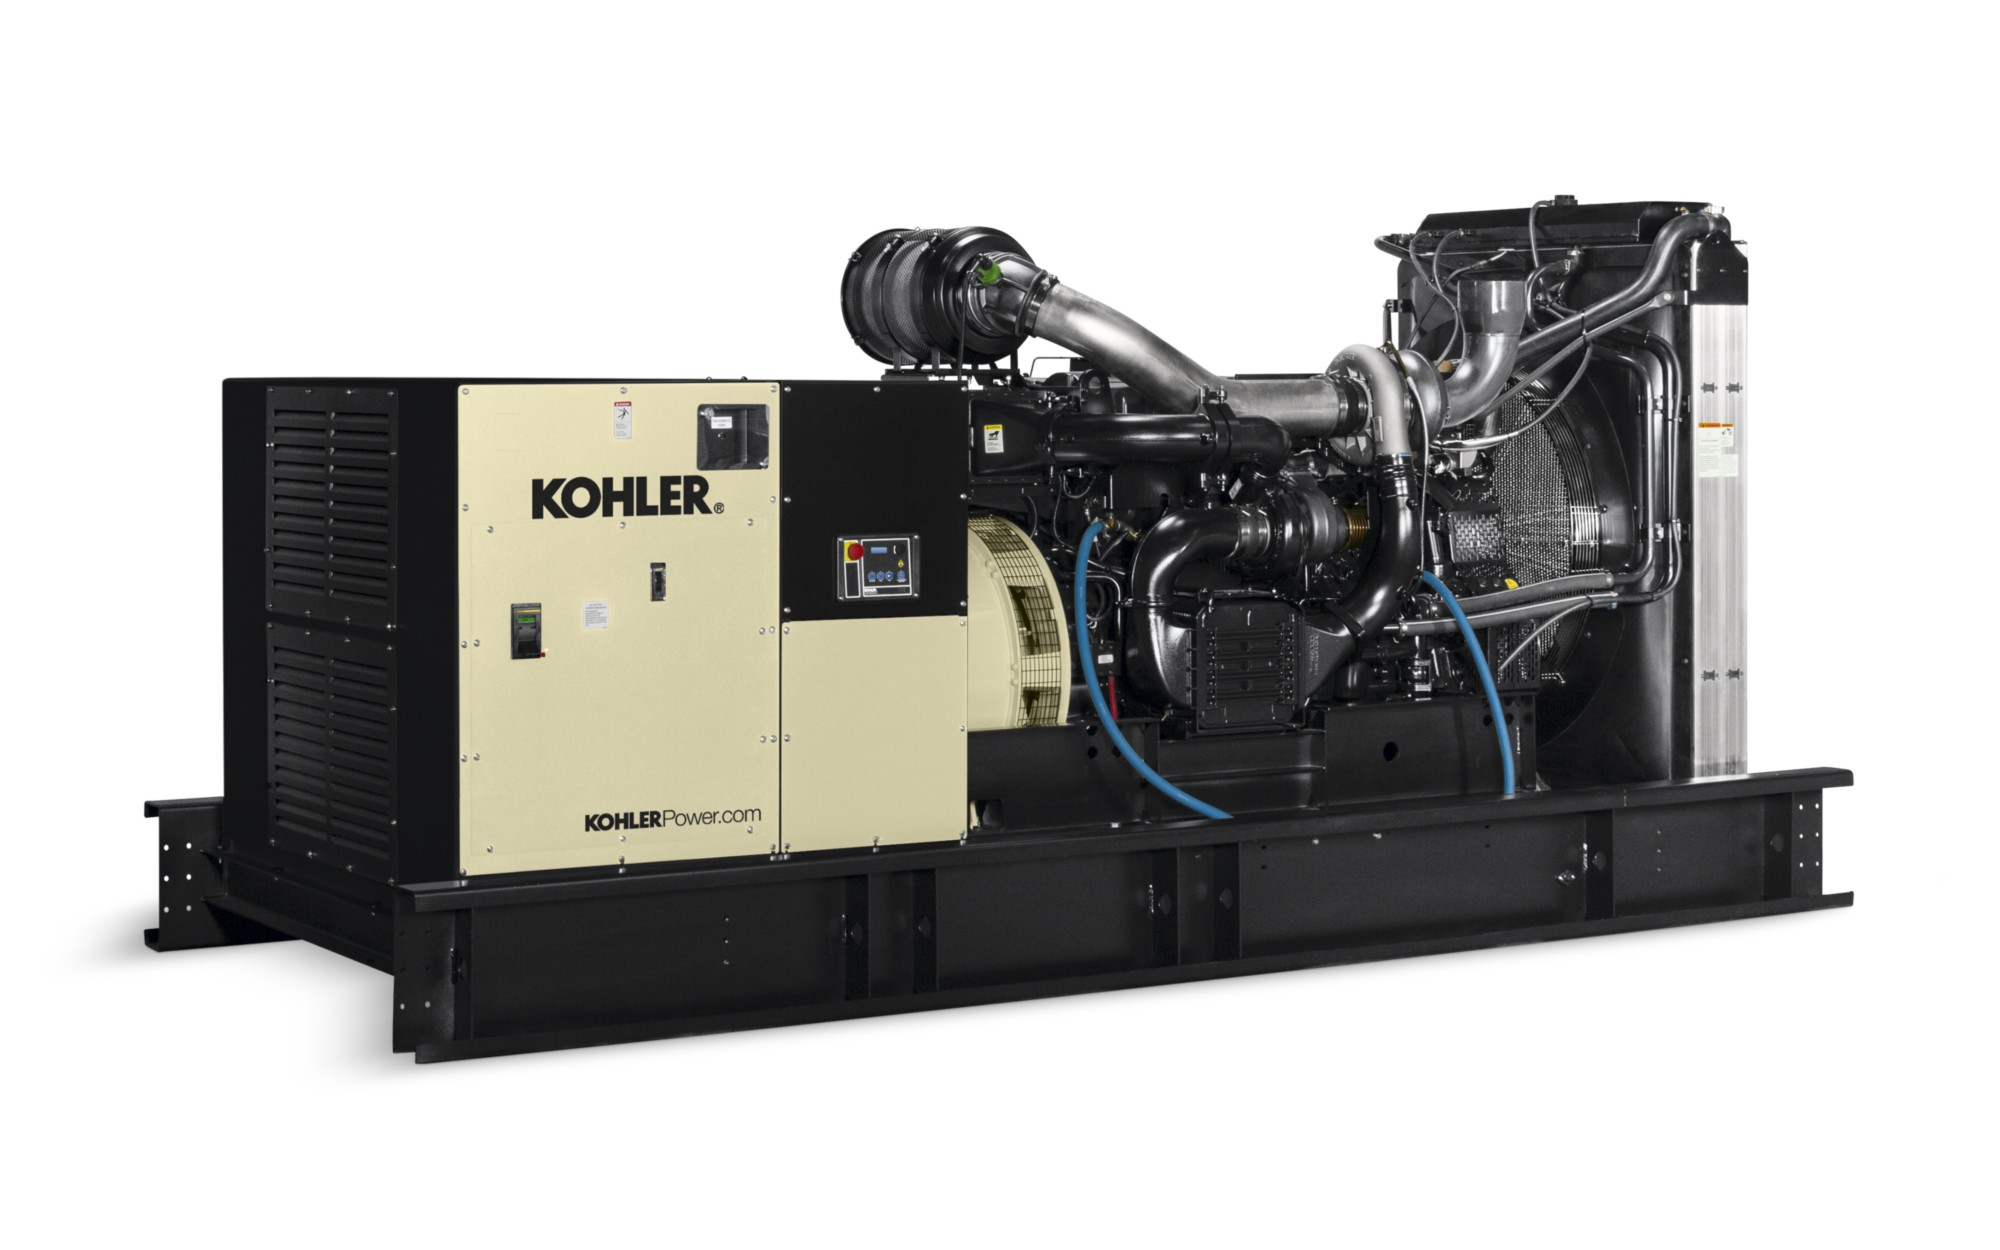 kohler generator repair manual